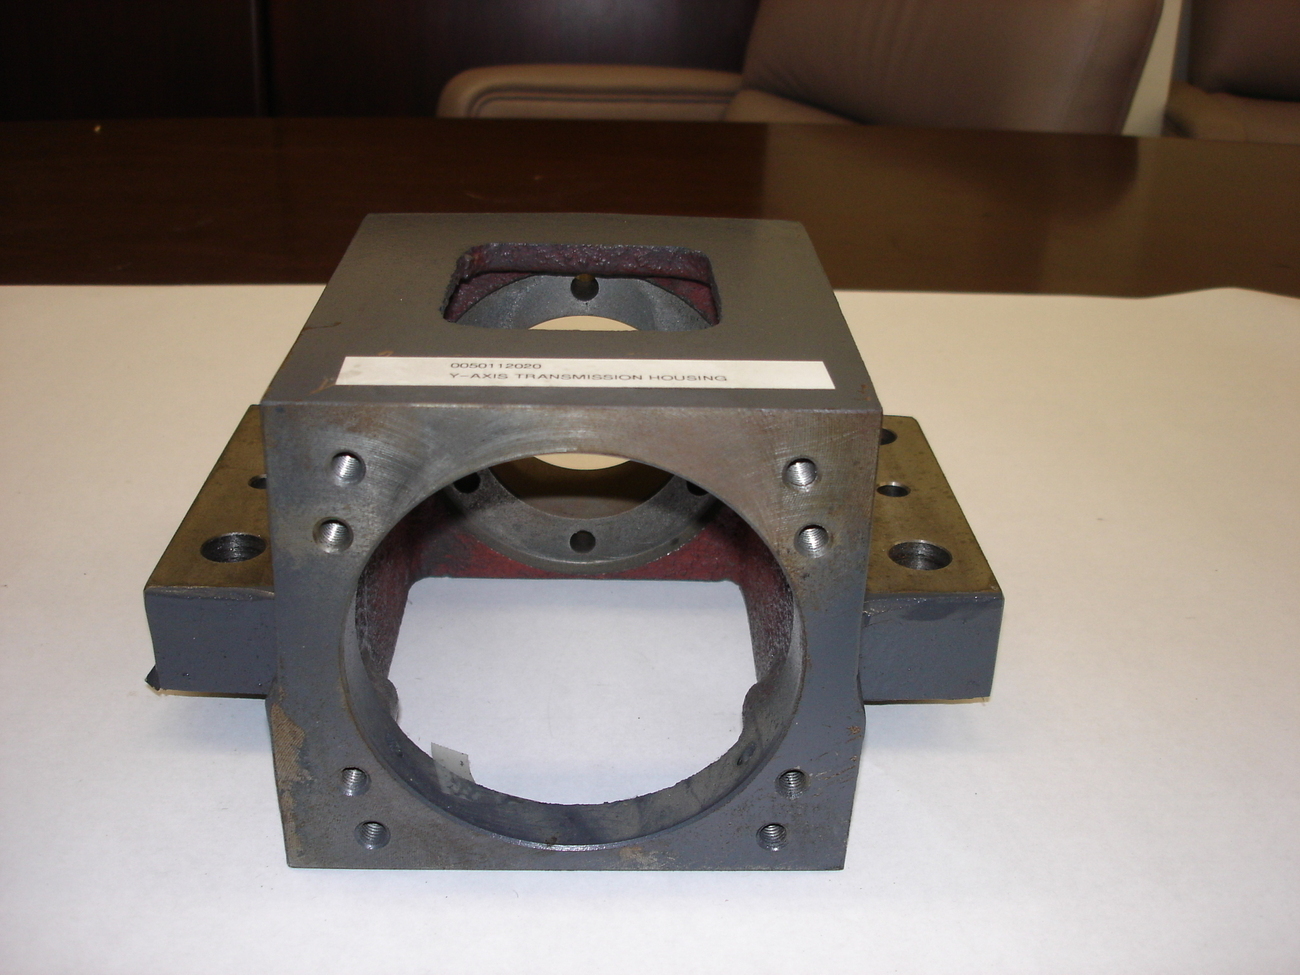 Primary image for Leadwell V-25 Y-Axis Transmission Housing 0050112020